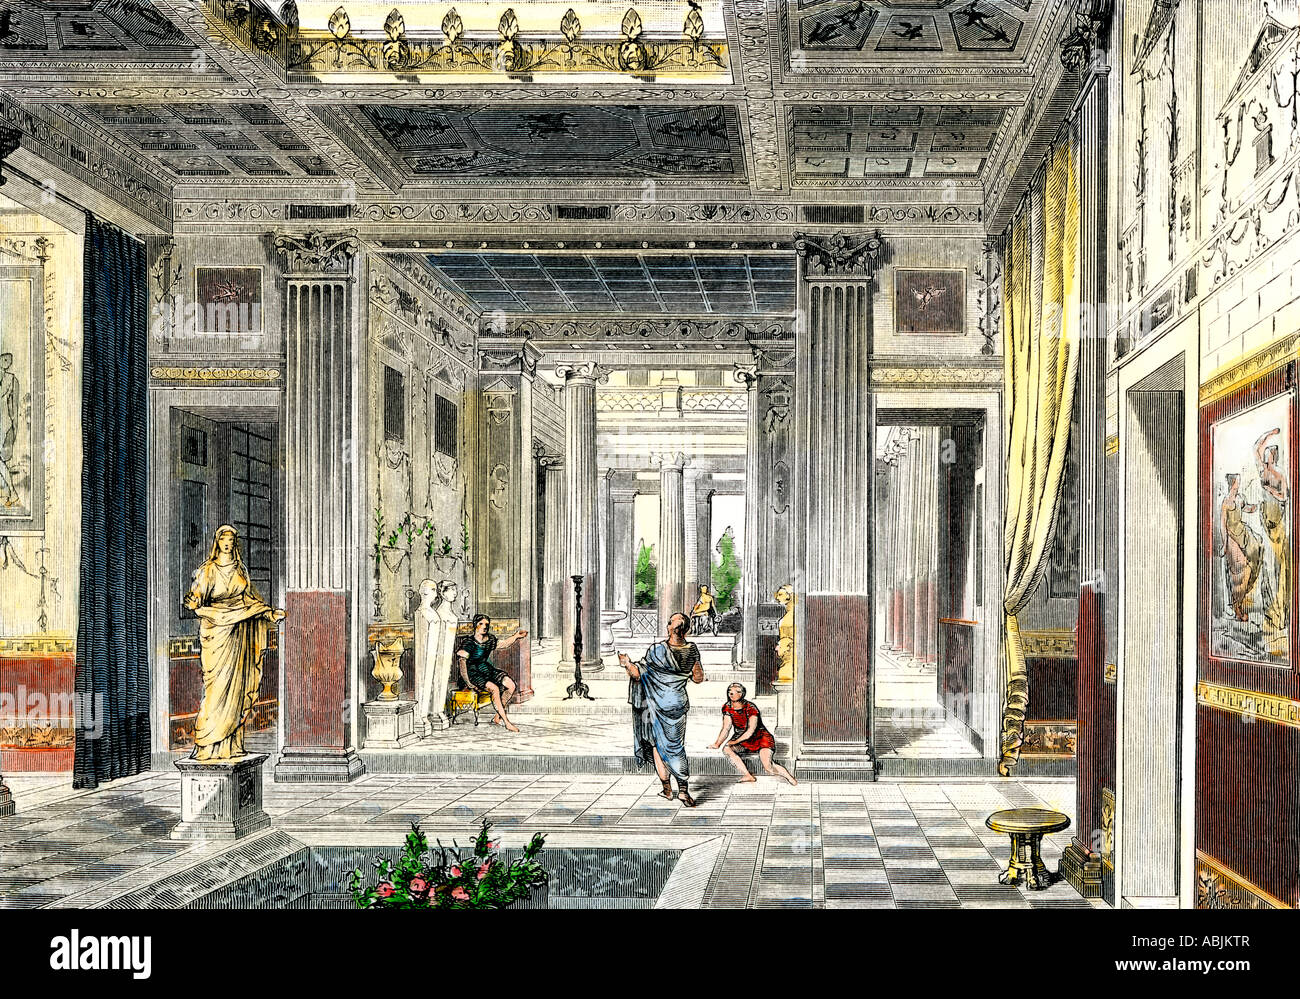 Roman house viewed from the atrium through the tablinuminto of the peristyle and a garden. Hand-colored woodcut - Stock Image